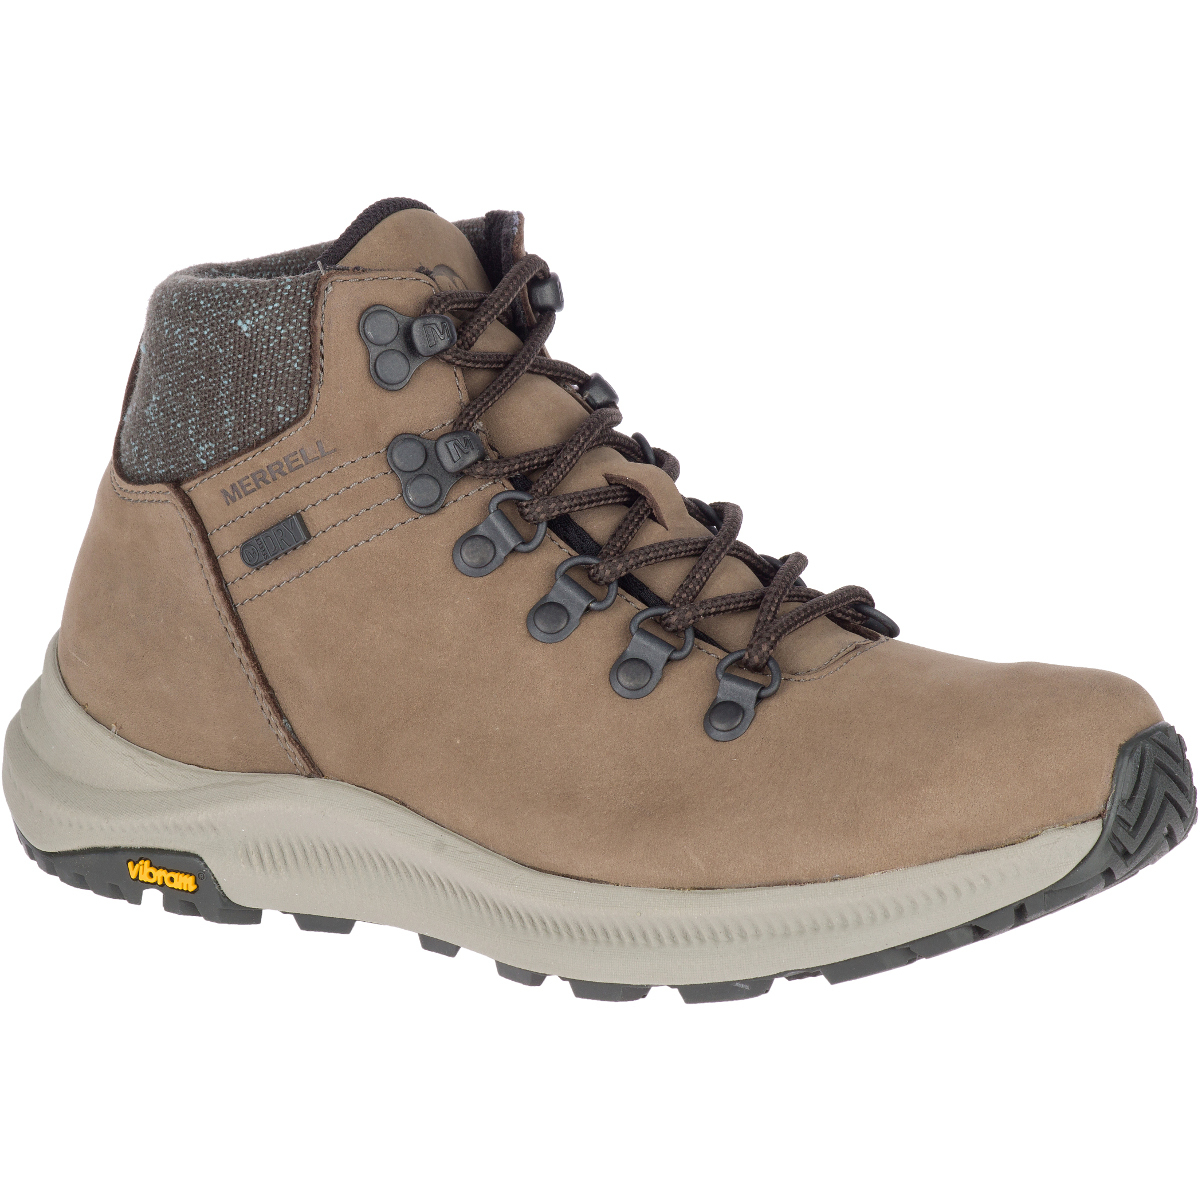 Merrell Women's Ontario Mid Waterproof Hiking Boot - Brown, 6